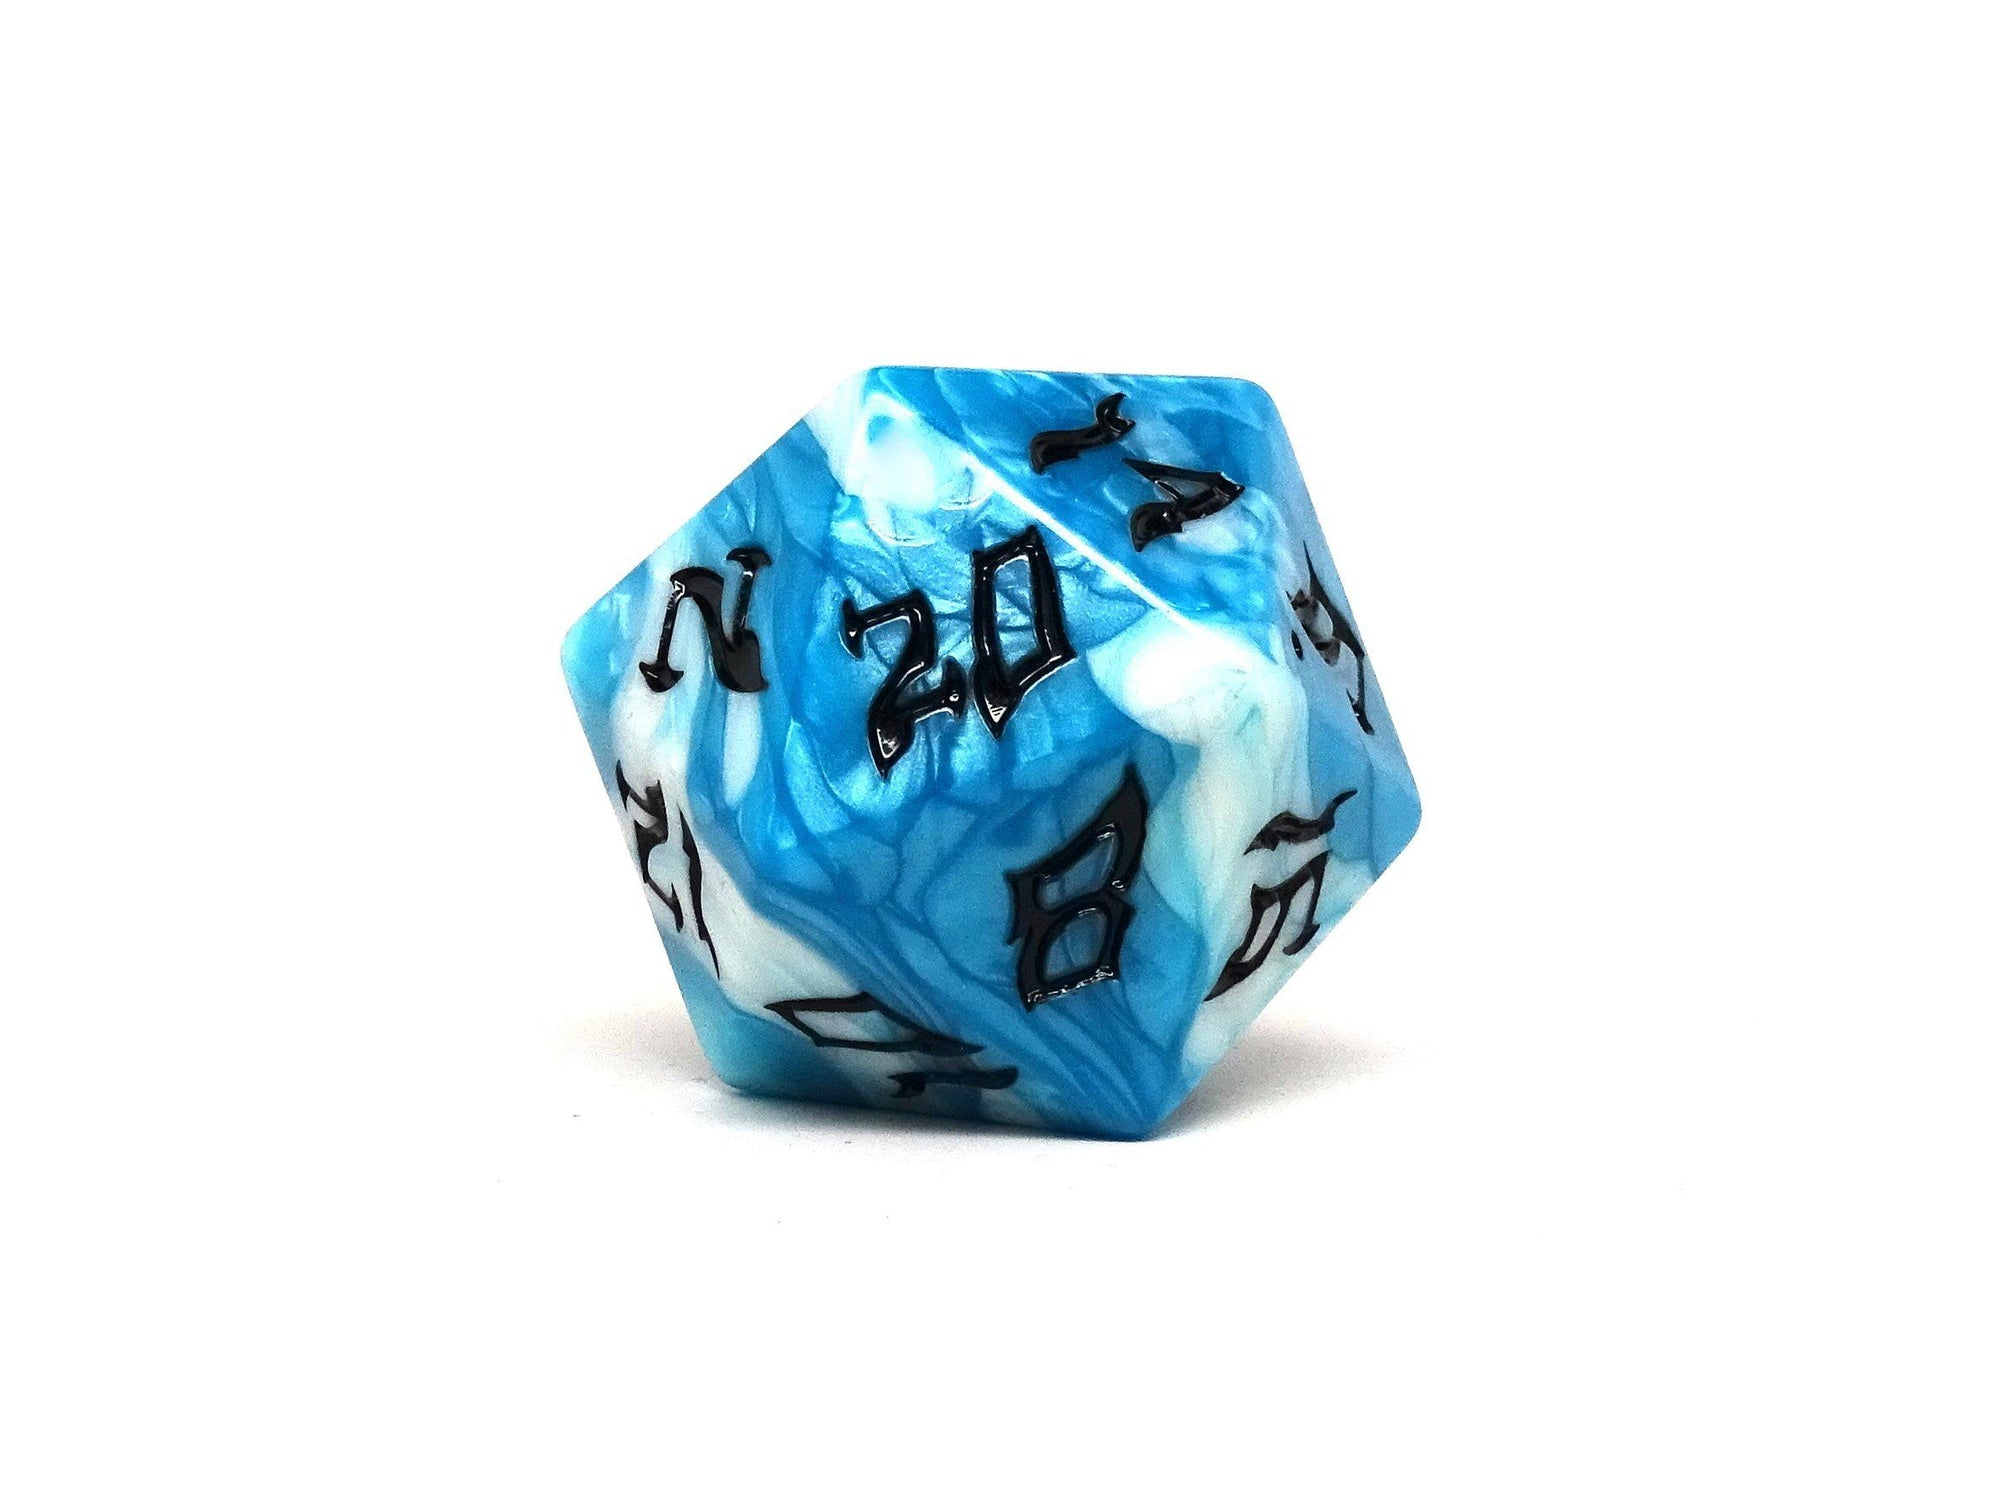 48mm Dice of the Giants - Cloud Giant D20